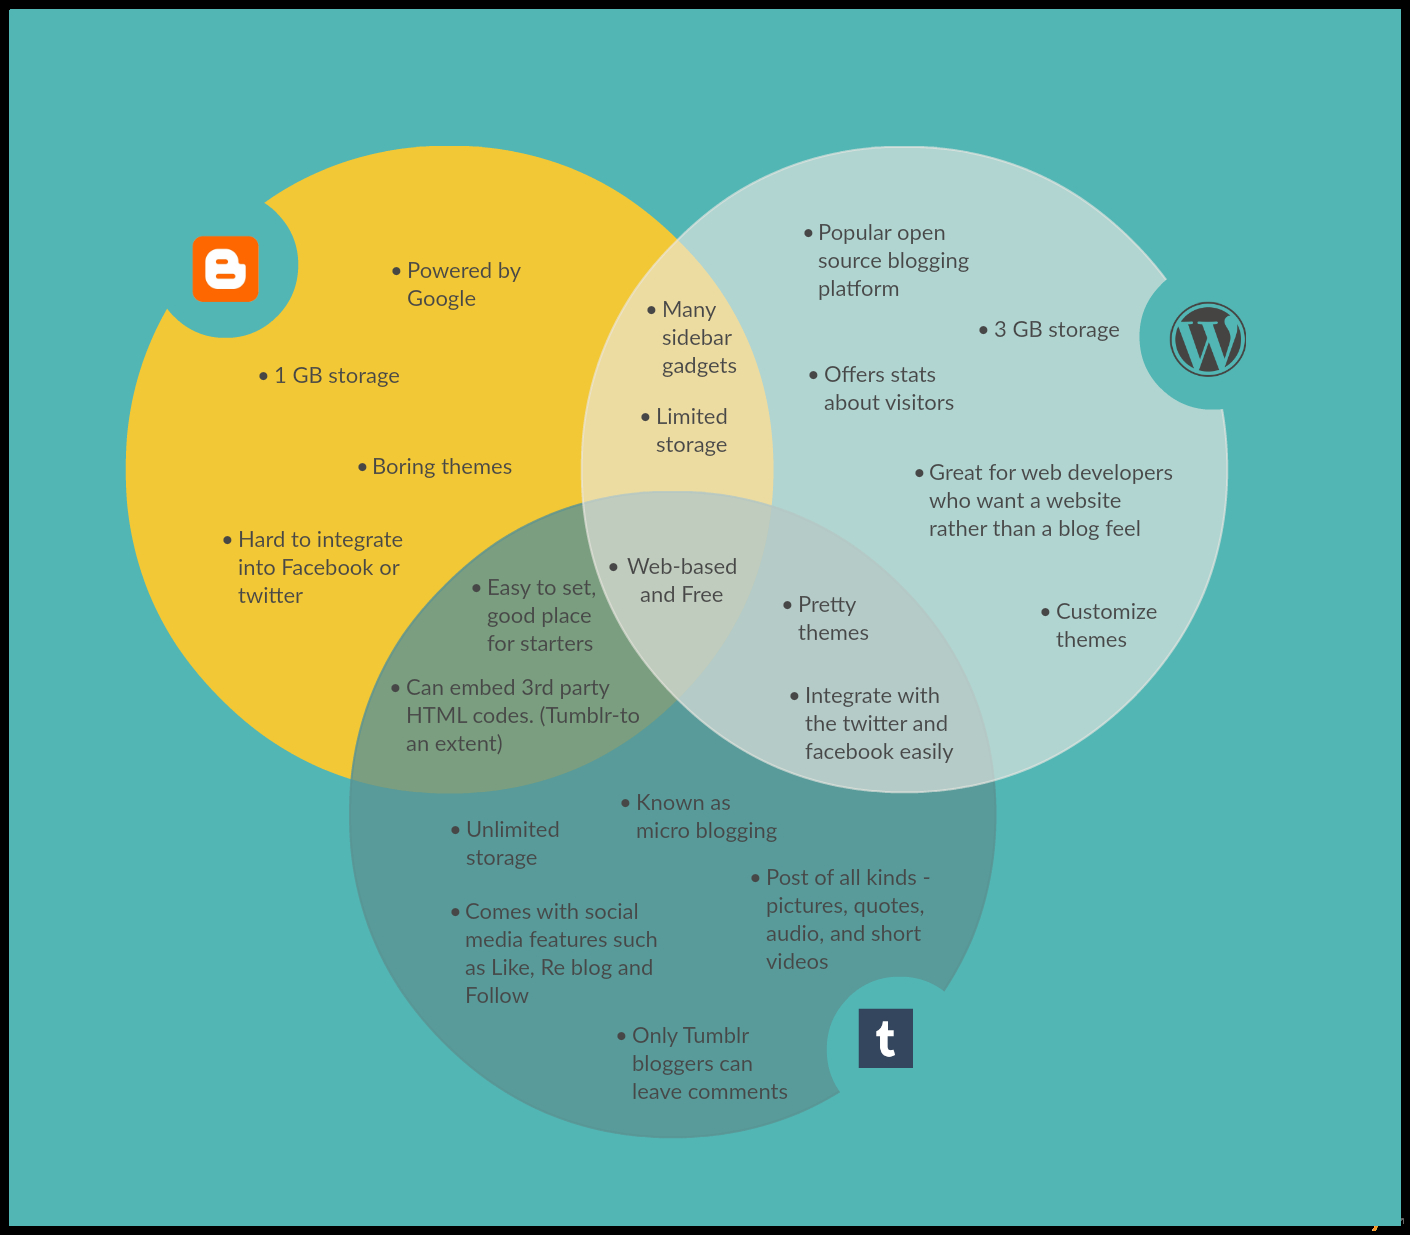 Venn Diagram Template Venn Diagram Templates Editable Online Or Download For Free